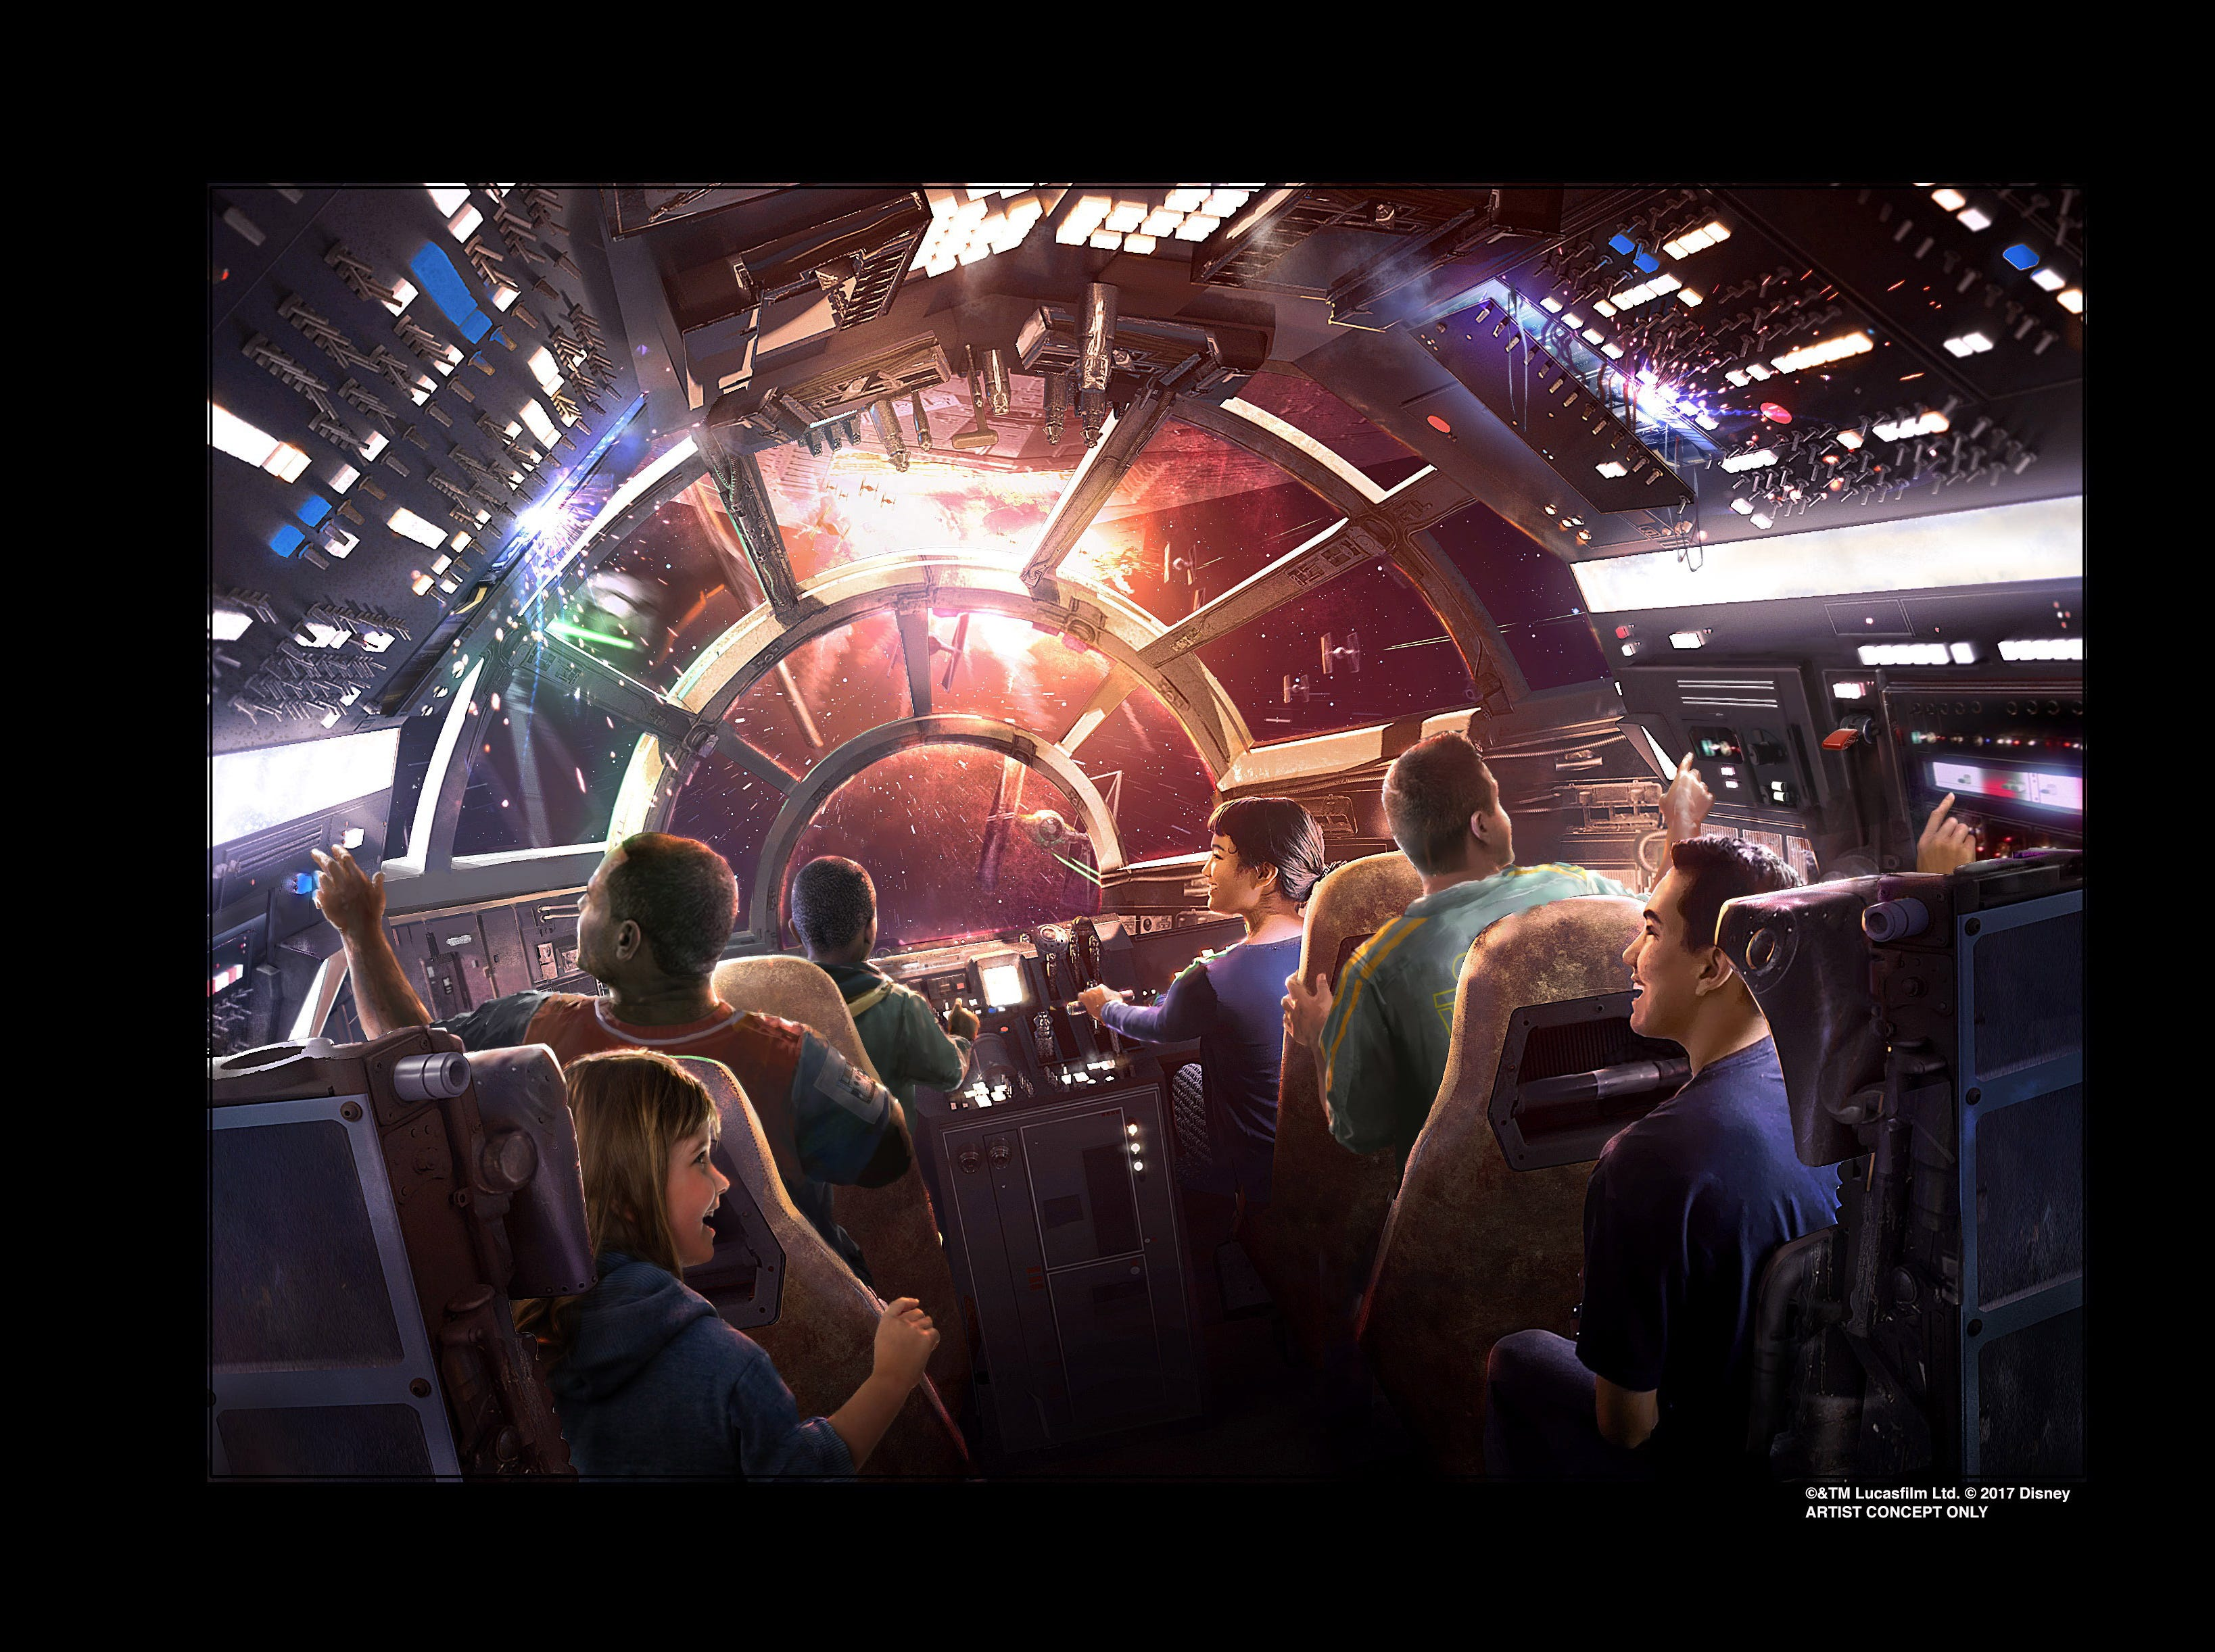 Six guests at a time will pilot the iconic  Millennium Falcon in one of two rides at Star Wars: Galaxy's Edge, due to open in June. It's the park's largest expansion in its 63-year history.